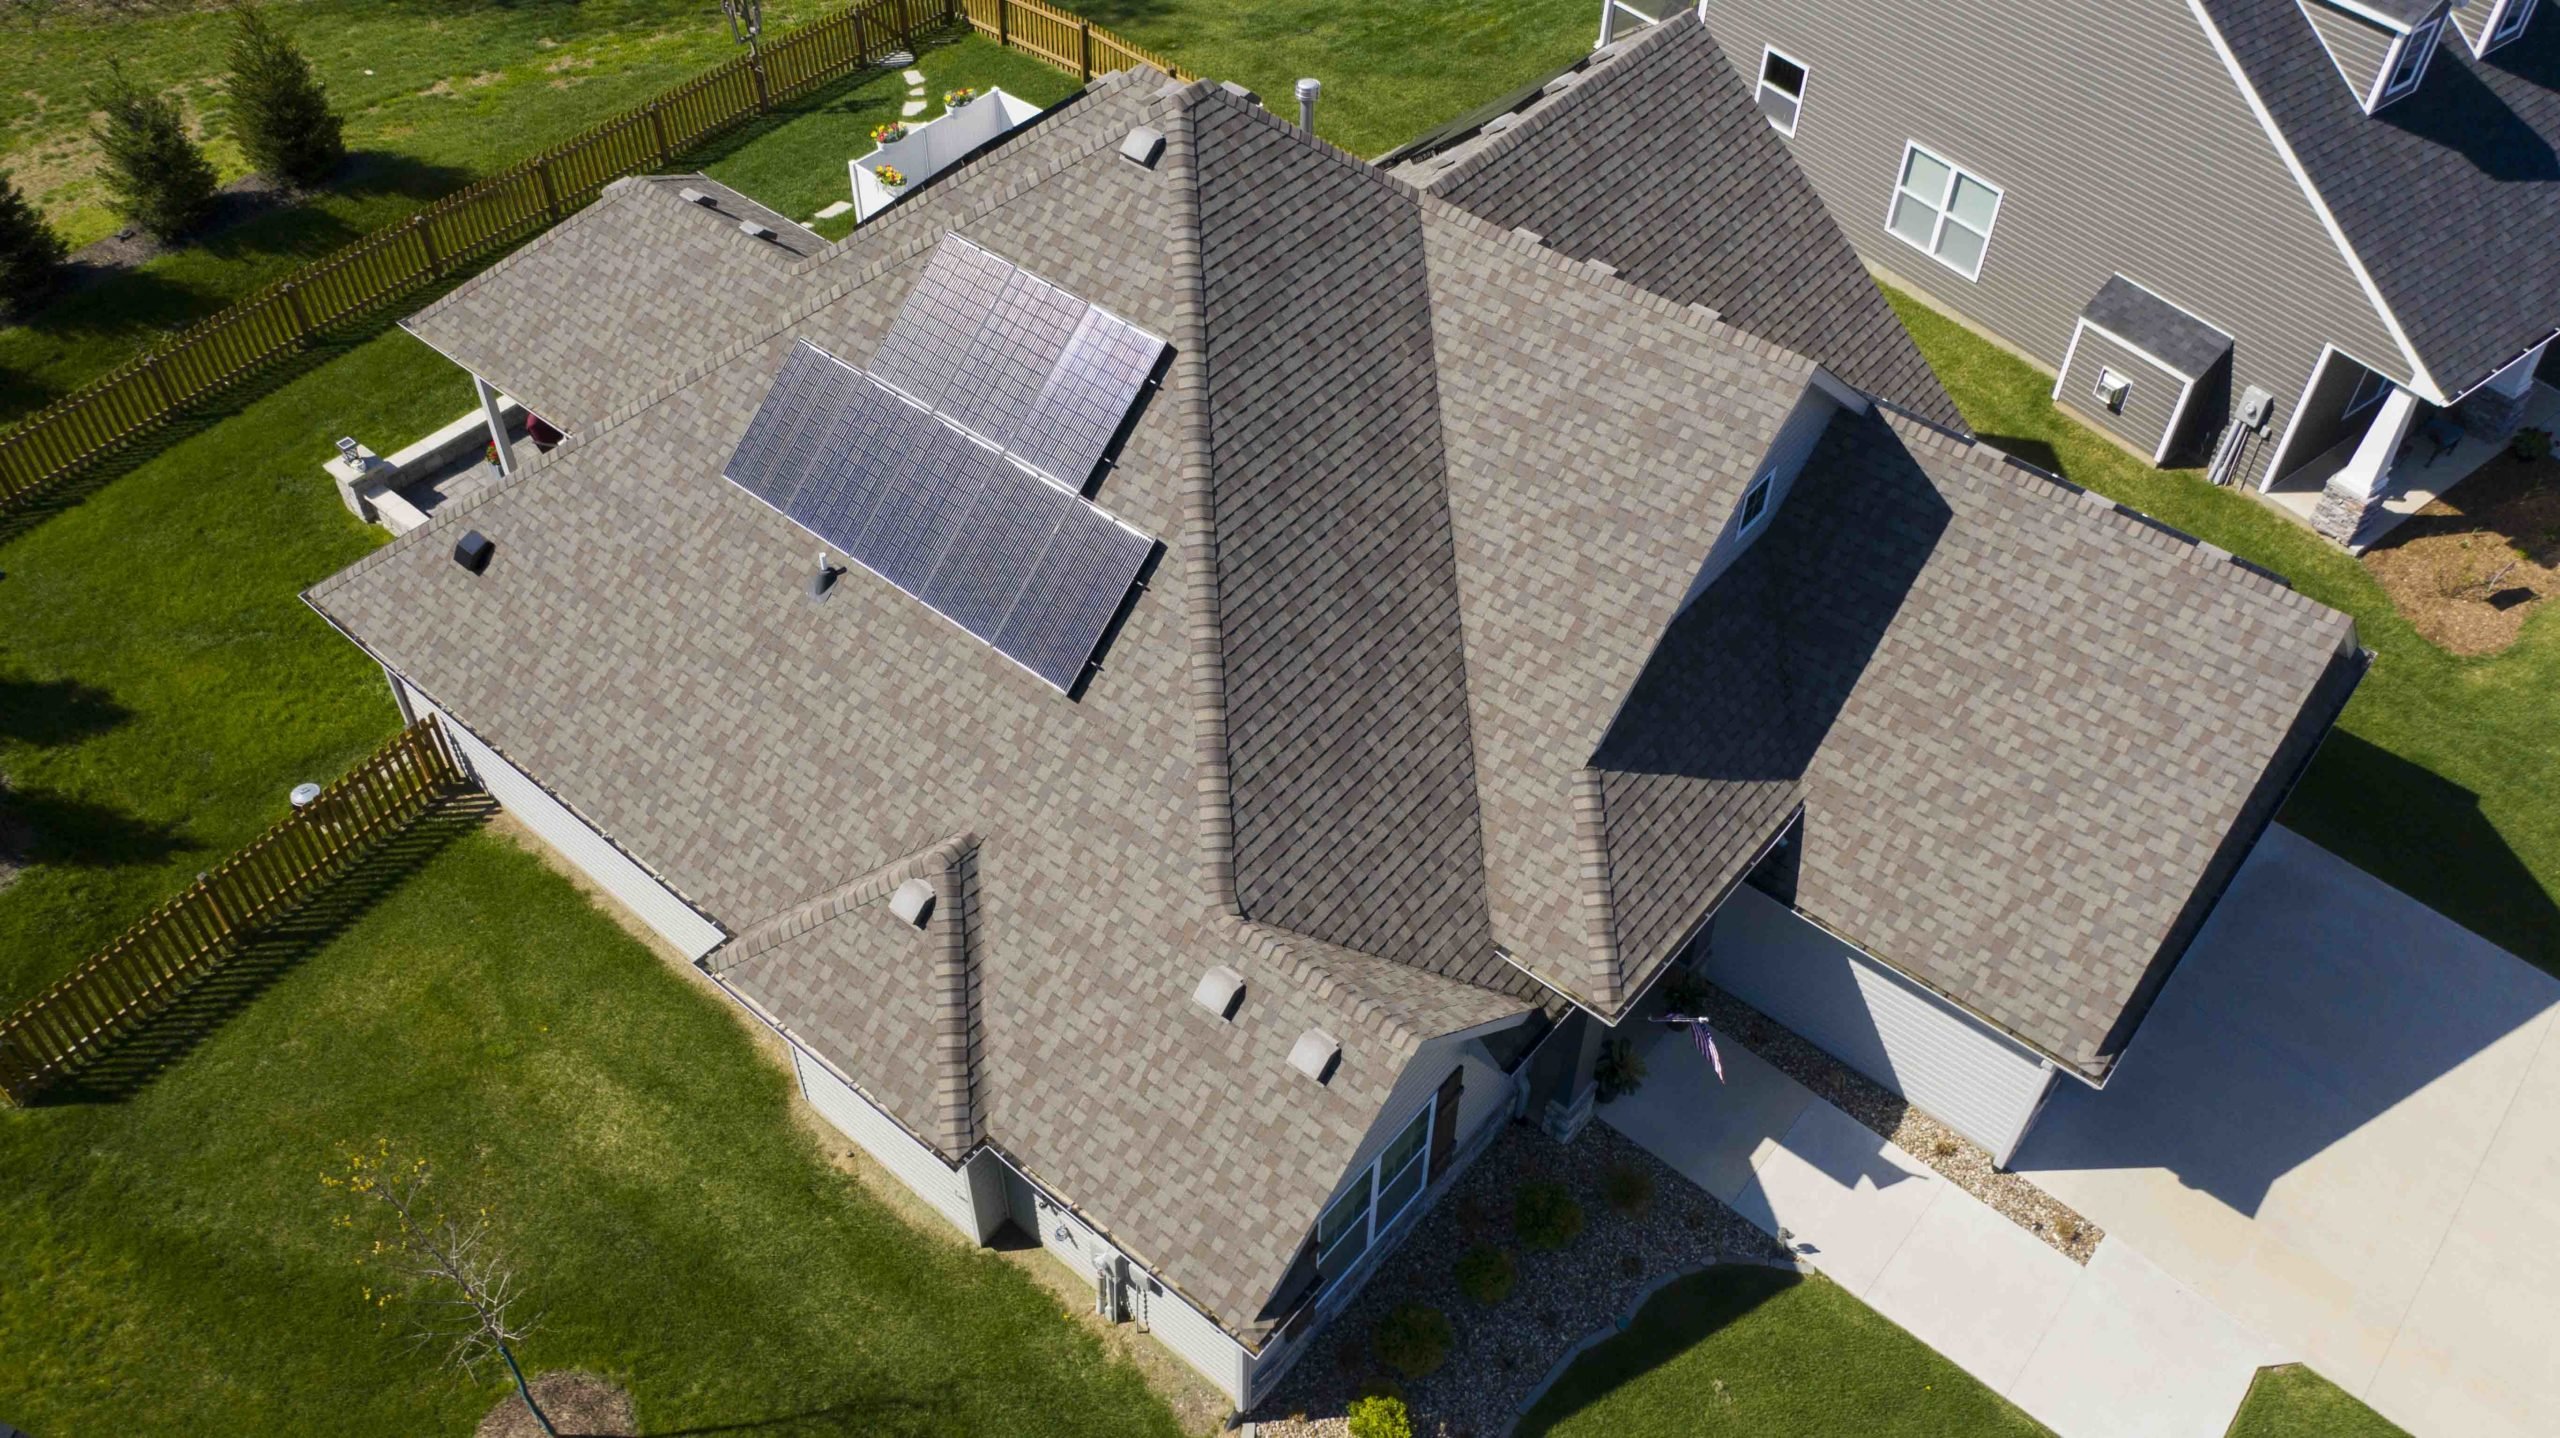 The solar panel installation on this Columbia, MO home was completed by Dogwood Solar.